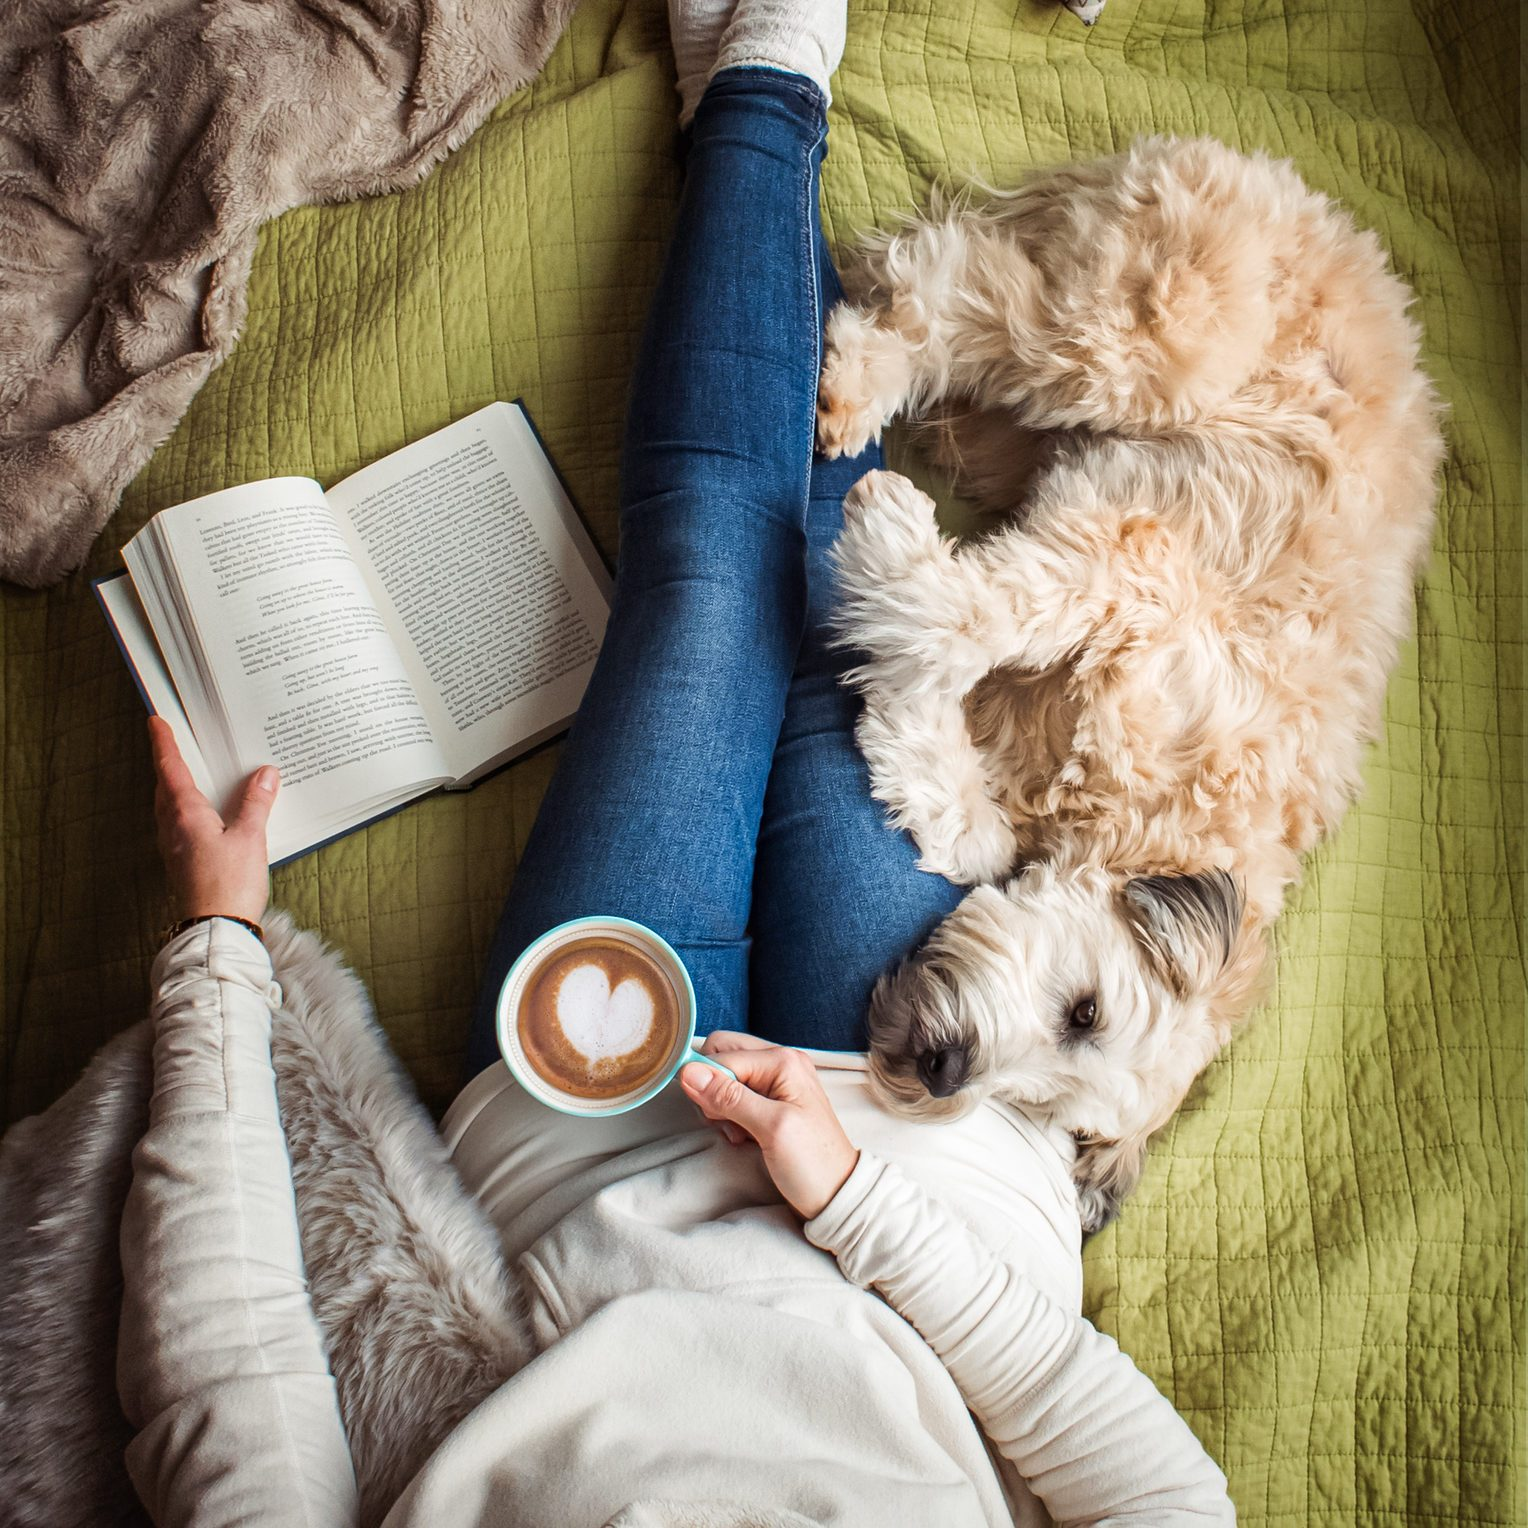 Overhead view of woman's torso on a bed with a book, coffee and a dog.